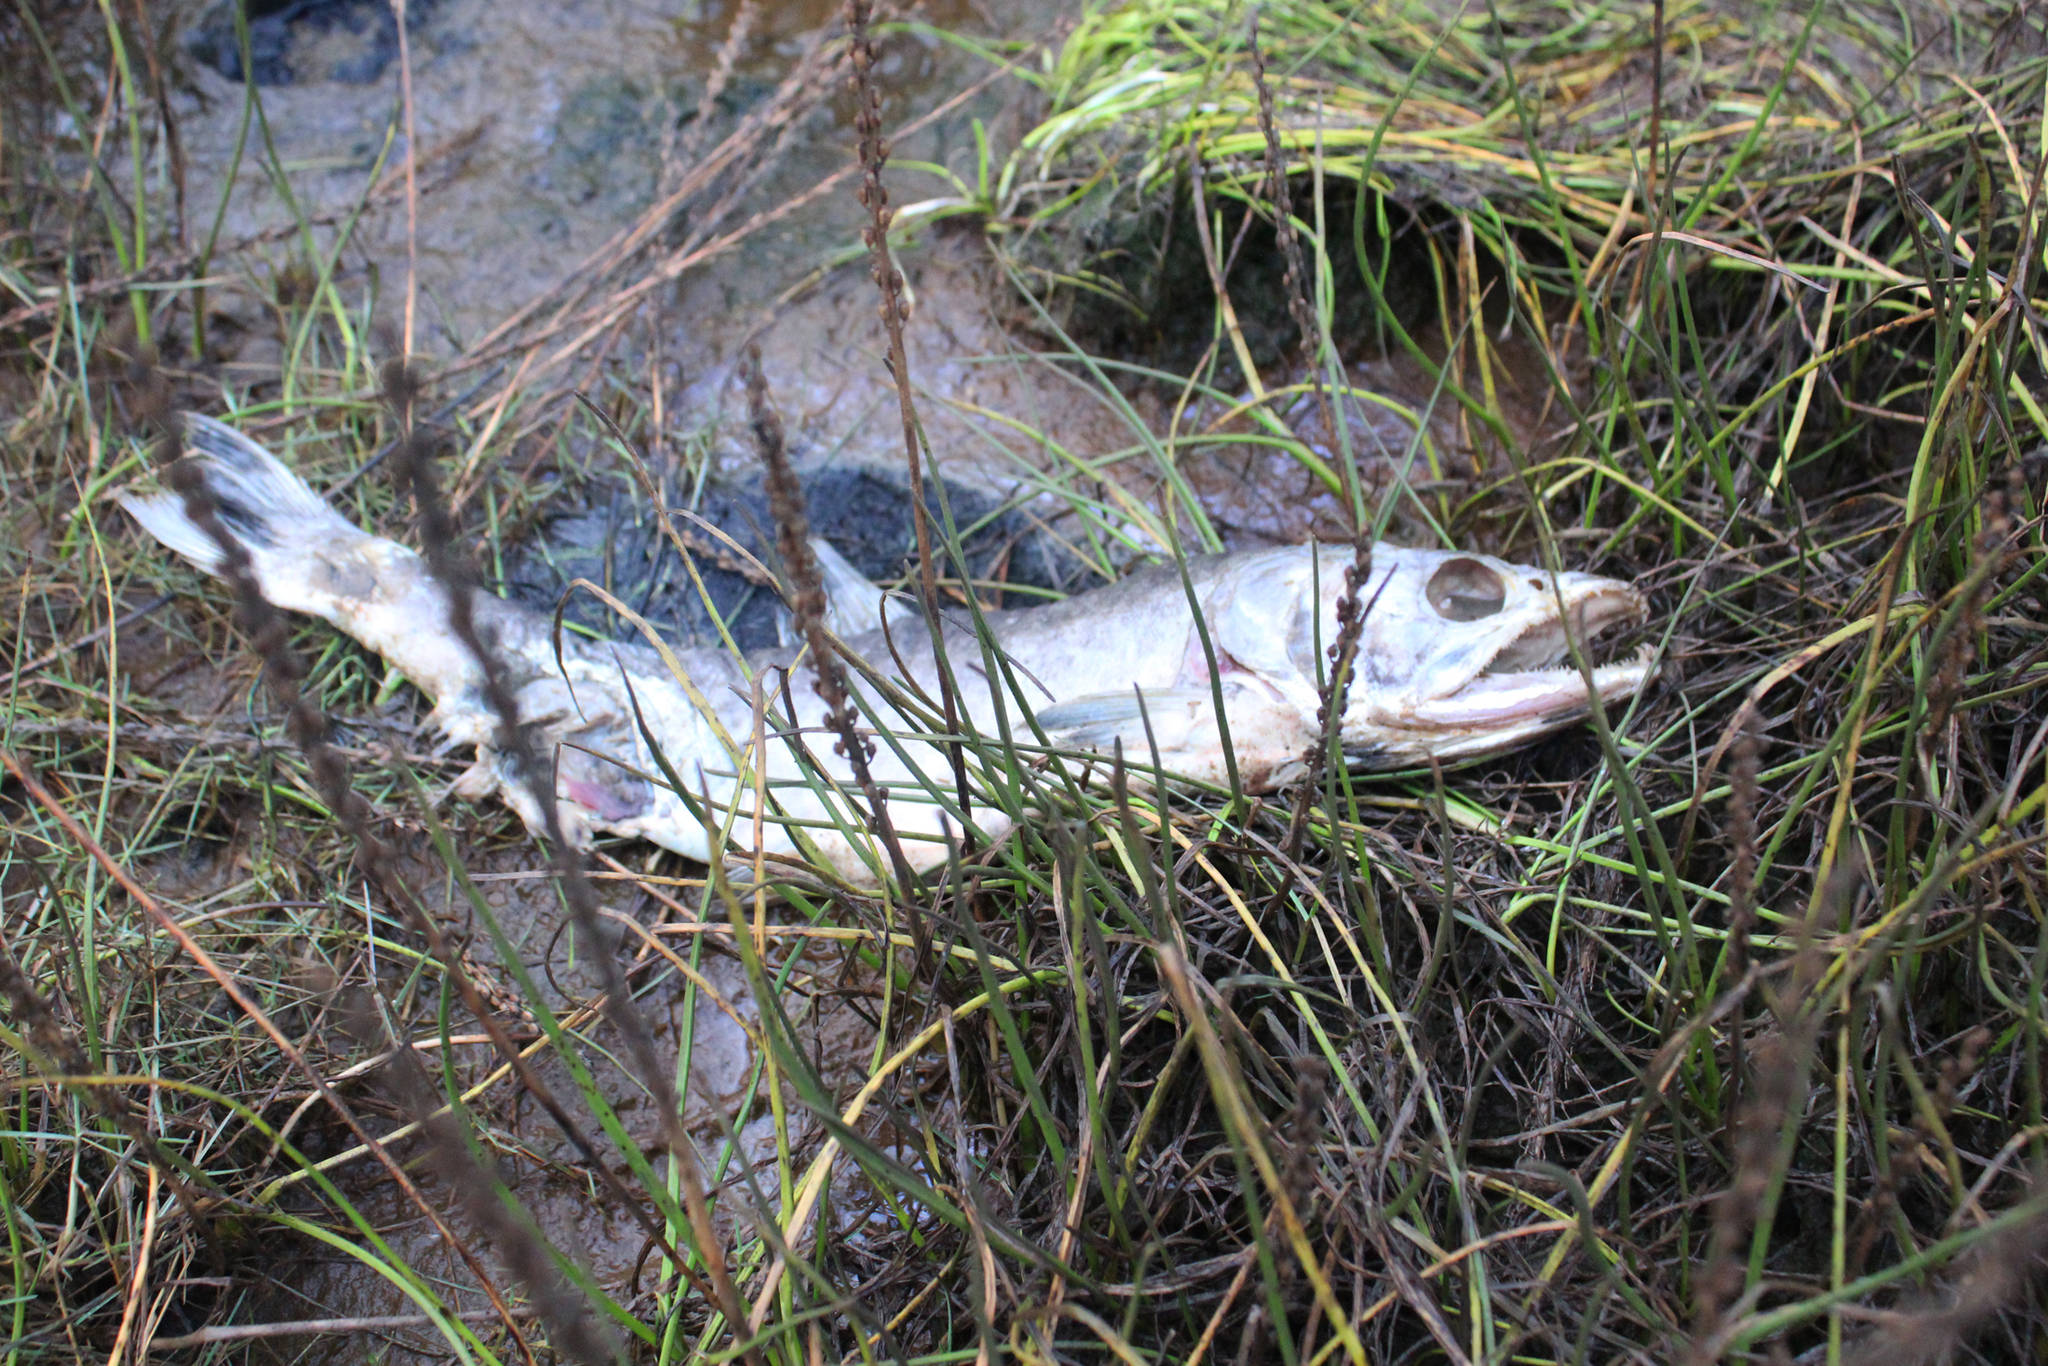 A dead fish decomposes in the Beluga Slough on Thursday, Sept. 28, 2017 in Homer, Alaska. A group of Paul Banks Elementary students got schooled in the ways of the slough and Beluga Lake during a field trip there last week. (Photo by Megan Pacer/Homer News)